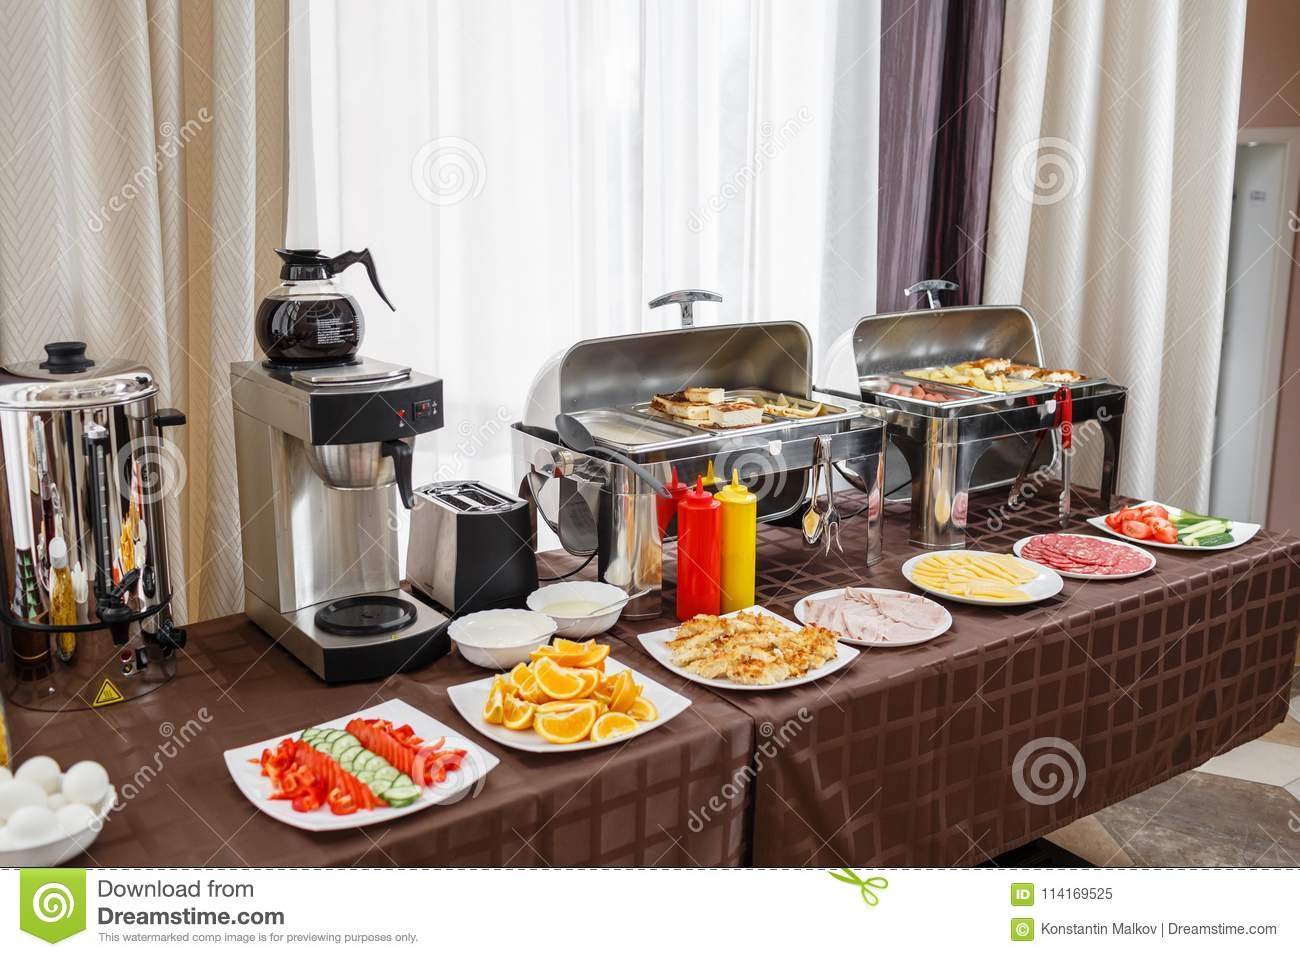 Royalty-Free Stock Photo & Buffet Trays Heated Ready For Service. Breakfast In Hotel ...